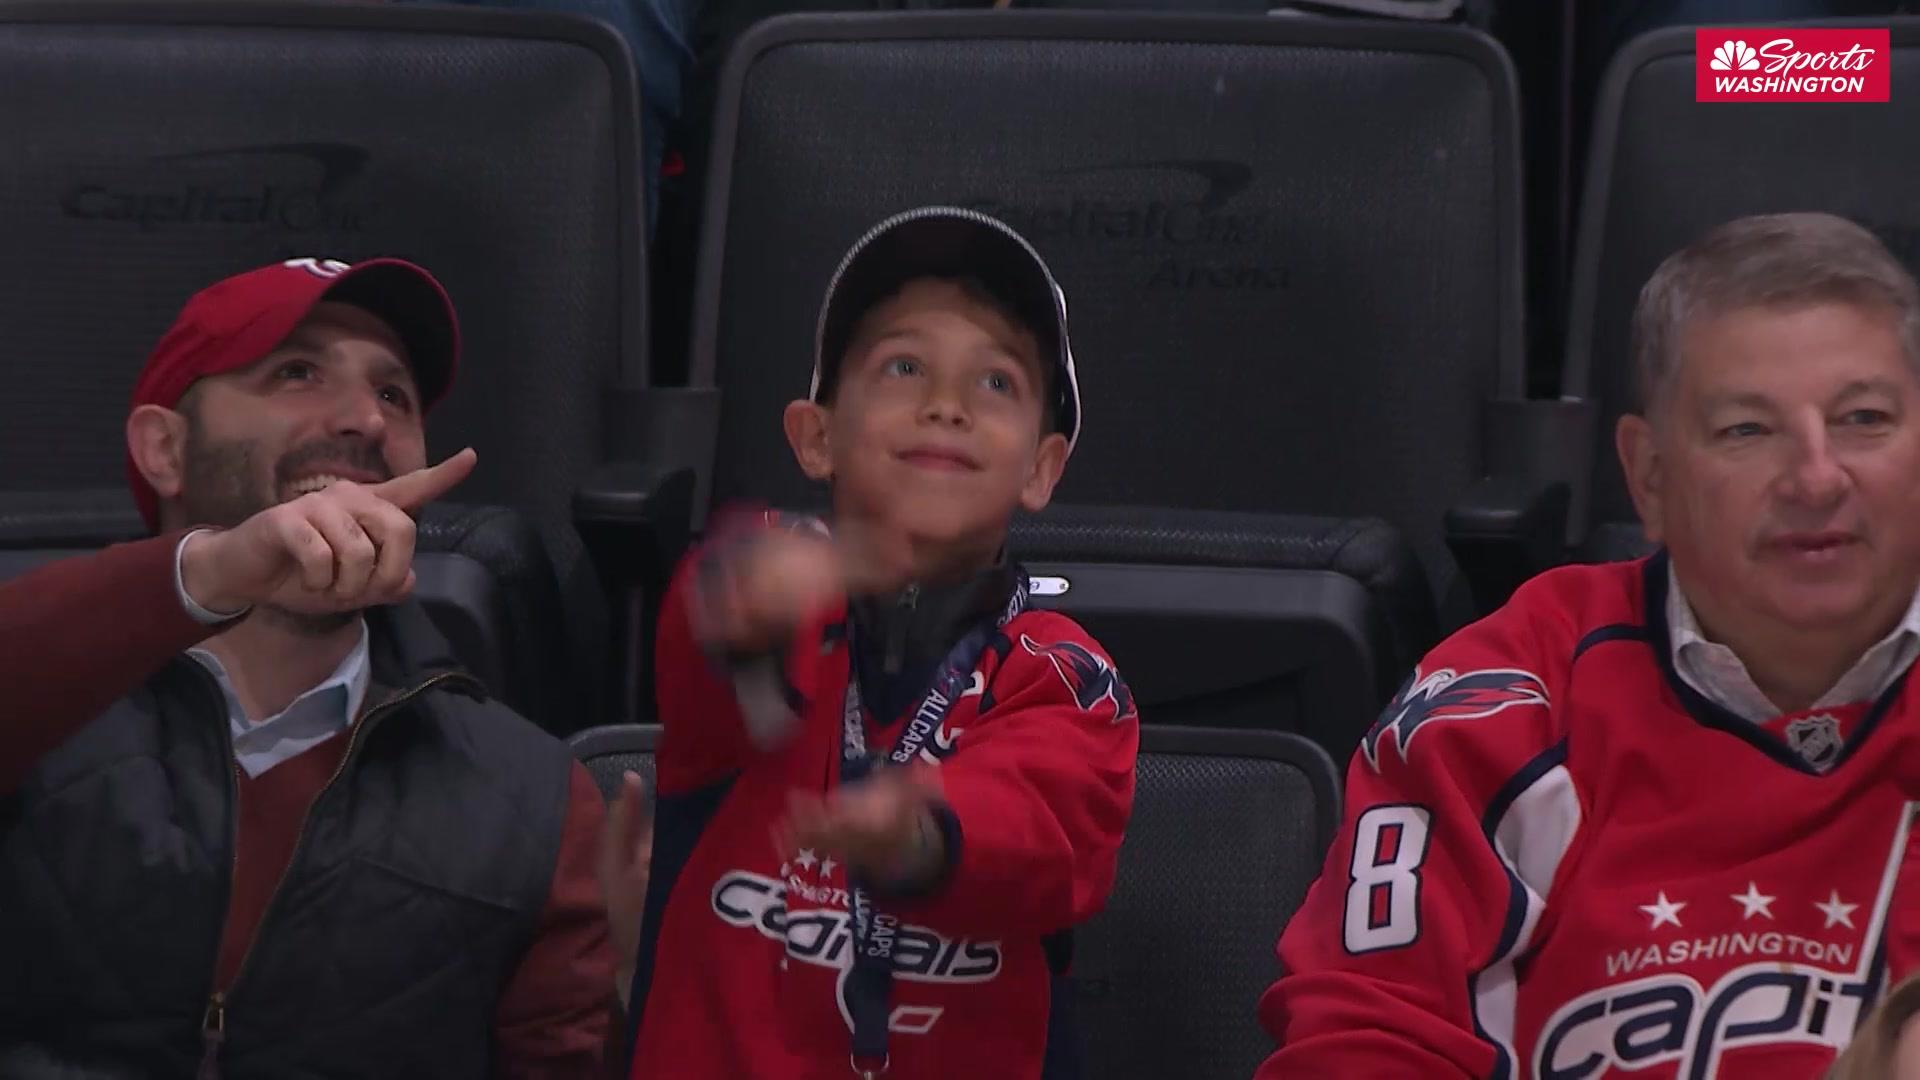 Capitals fans chomp along to 'Baby Shark' around Capital One Arena